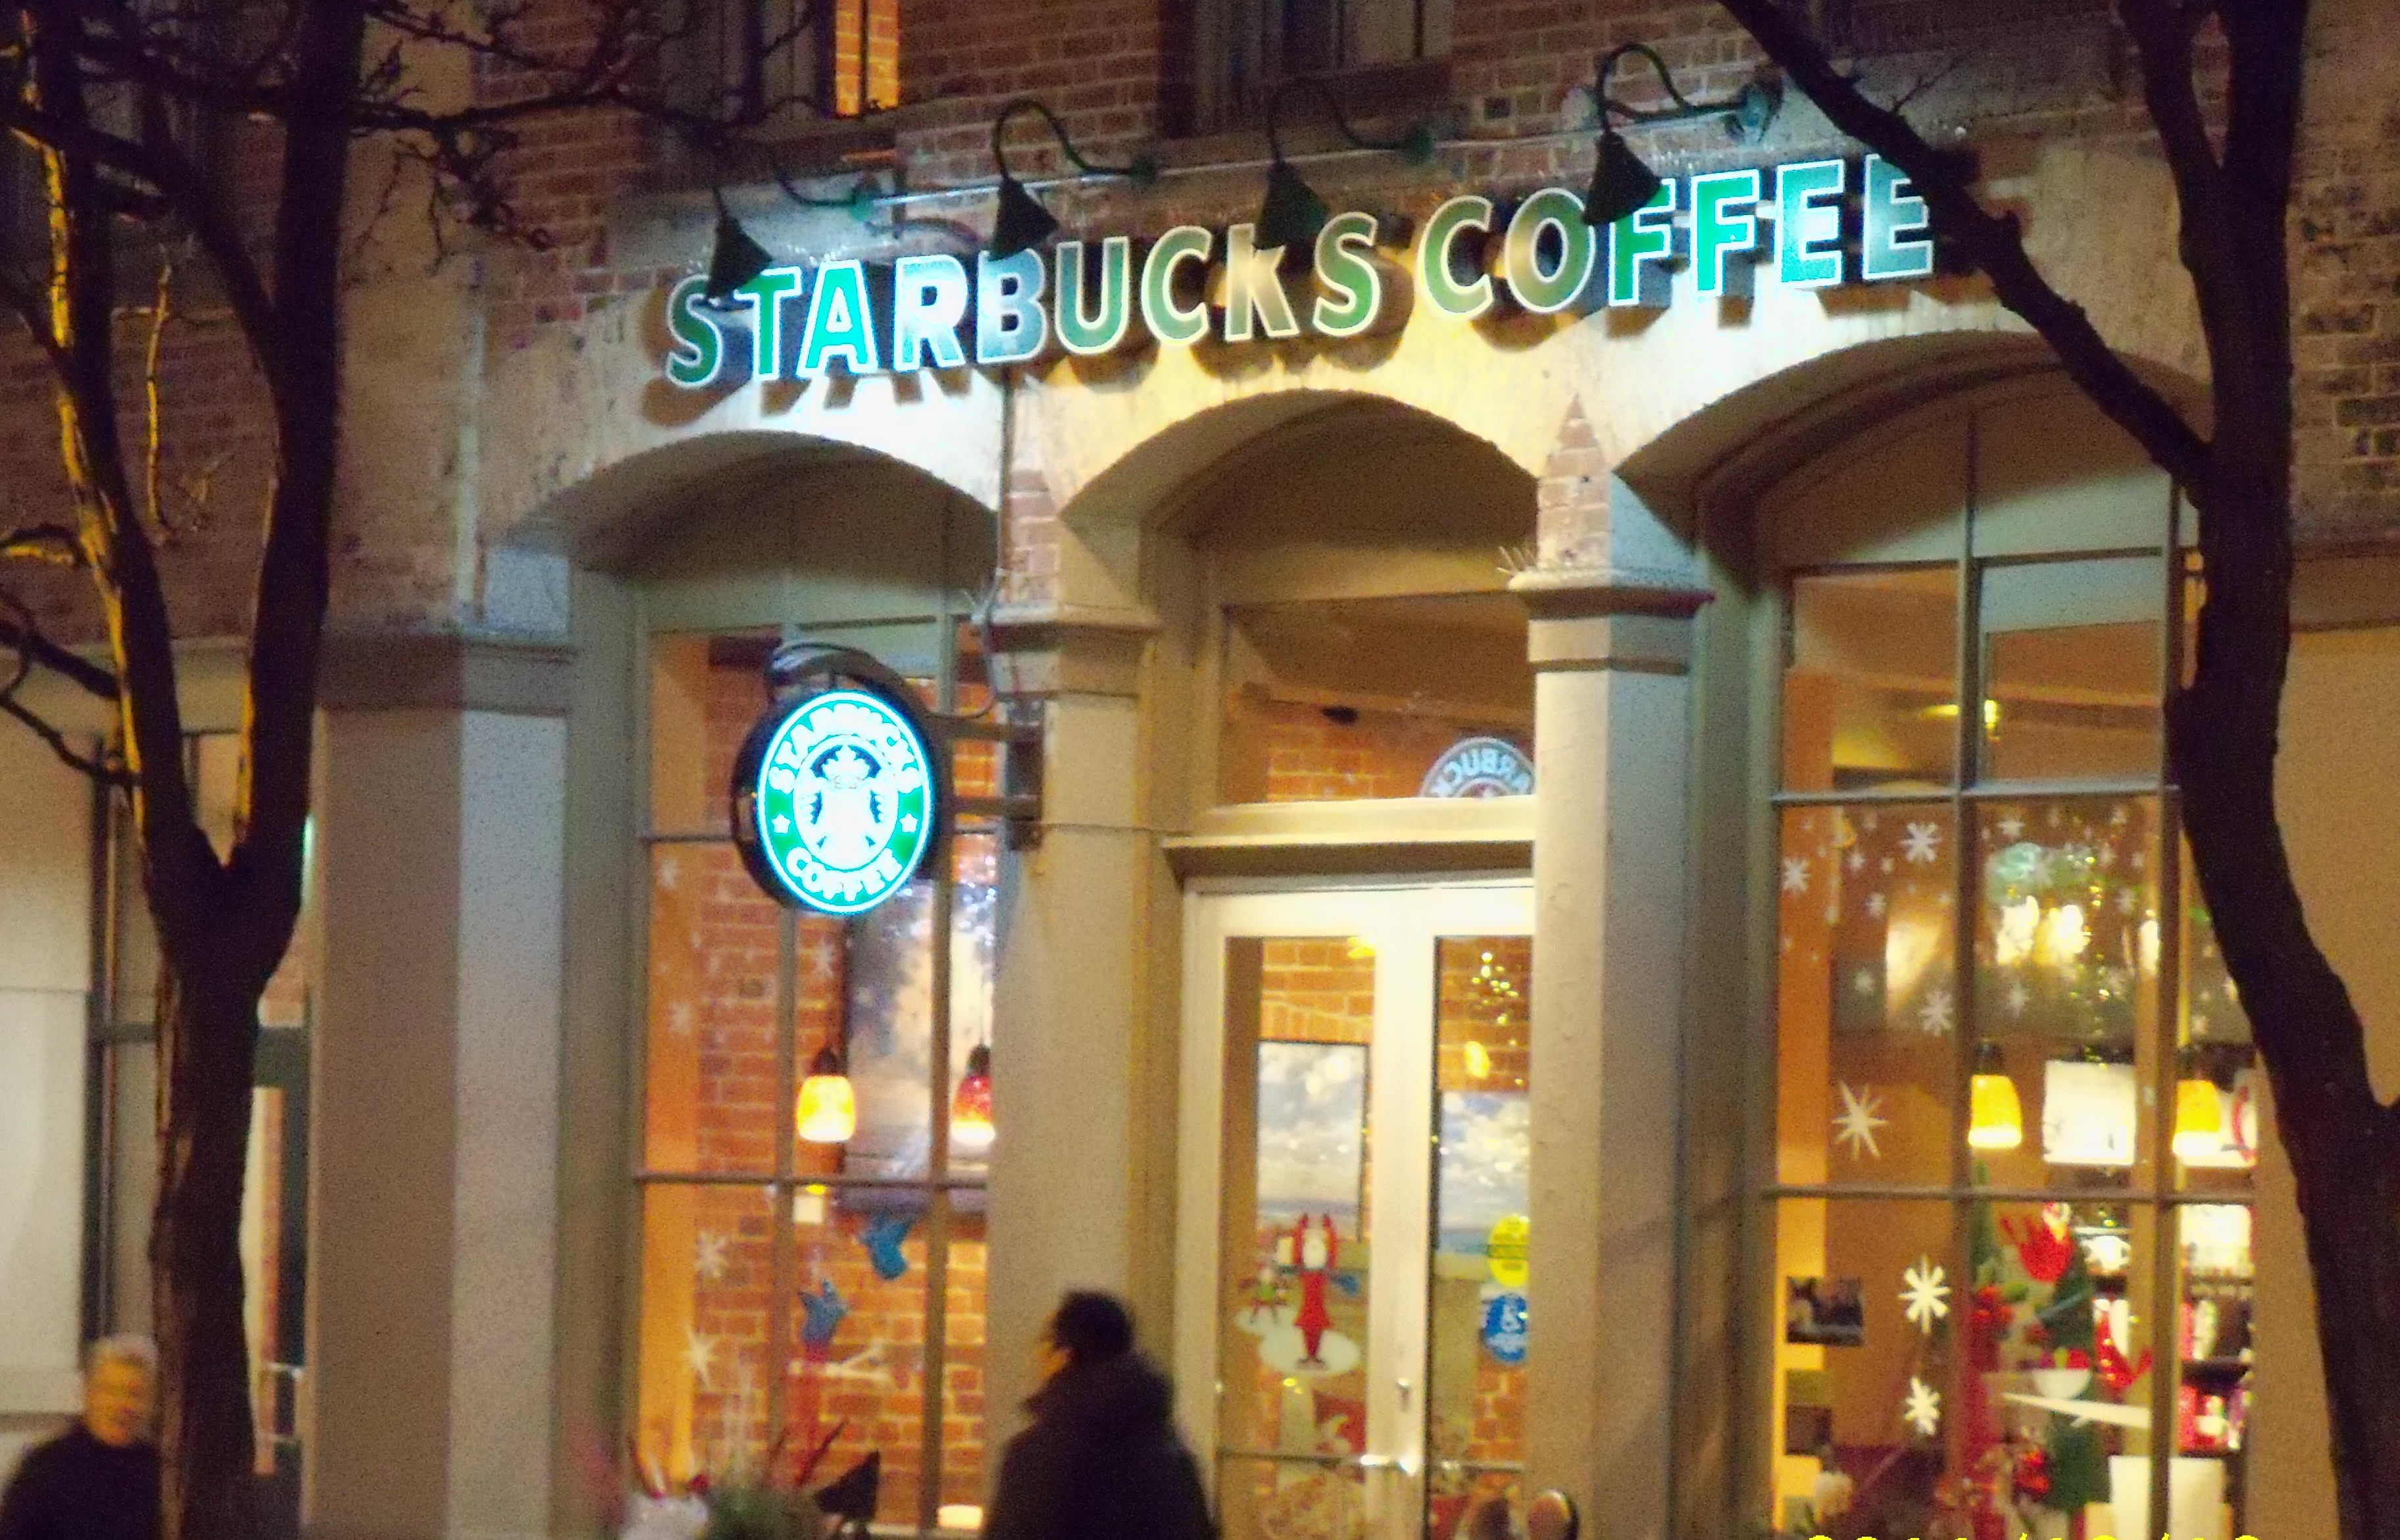 File:Starbucks Coffee on Front Street, Toronto, between Church and Jarvis streets -a.jpg - Wikimedia Commons